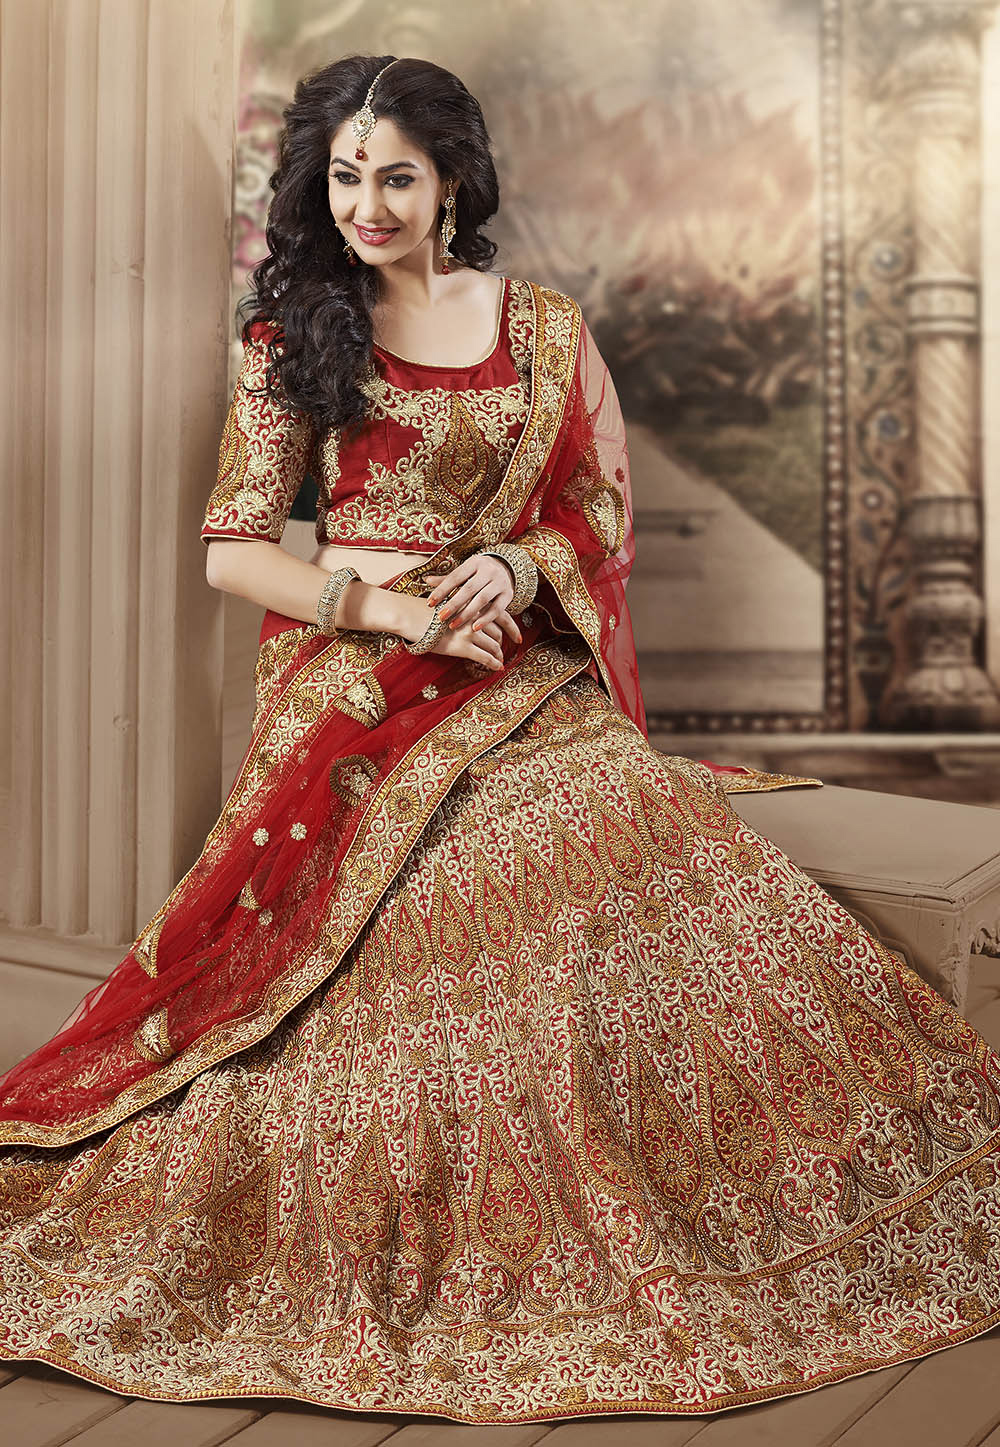 A Red and Golden Art Silk Lehenga Choli with Dupatta. (Image: Utsavfashion.com)